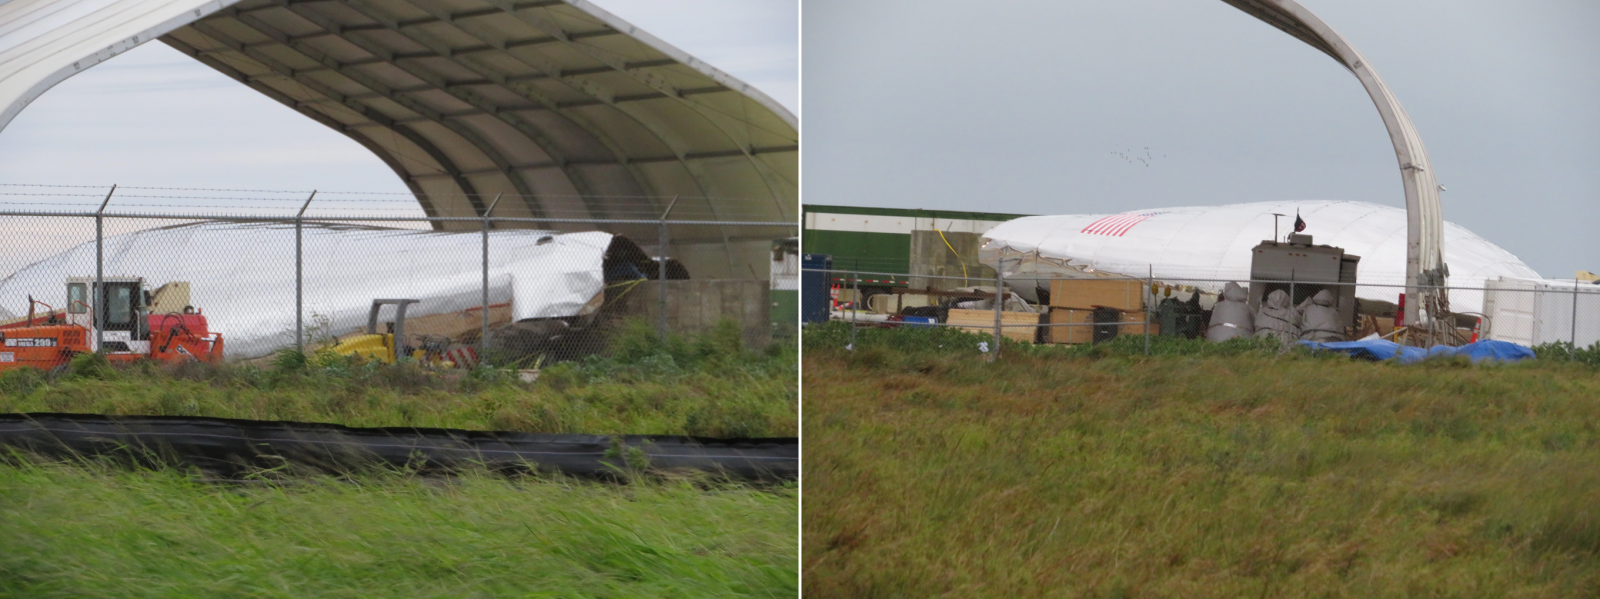 Damage to SpaceX's Starship hopper can be seen in these images. Photos courtesy of NASASpaceFlight / bocachicagal